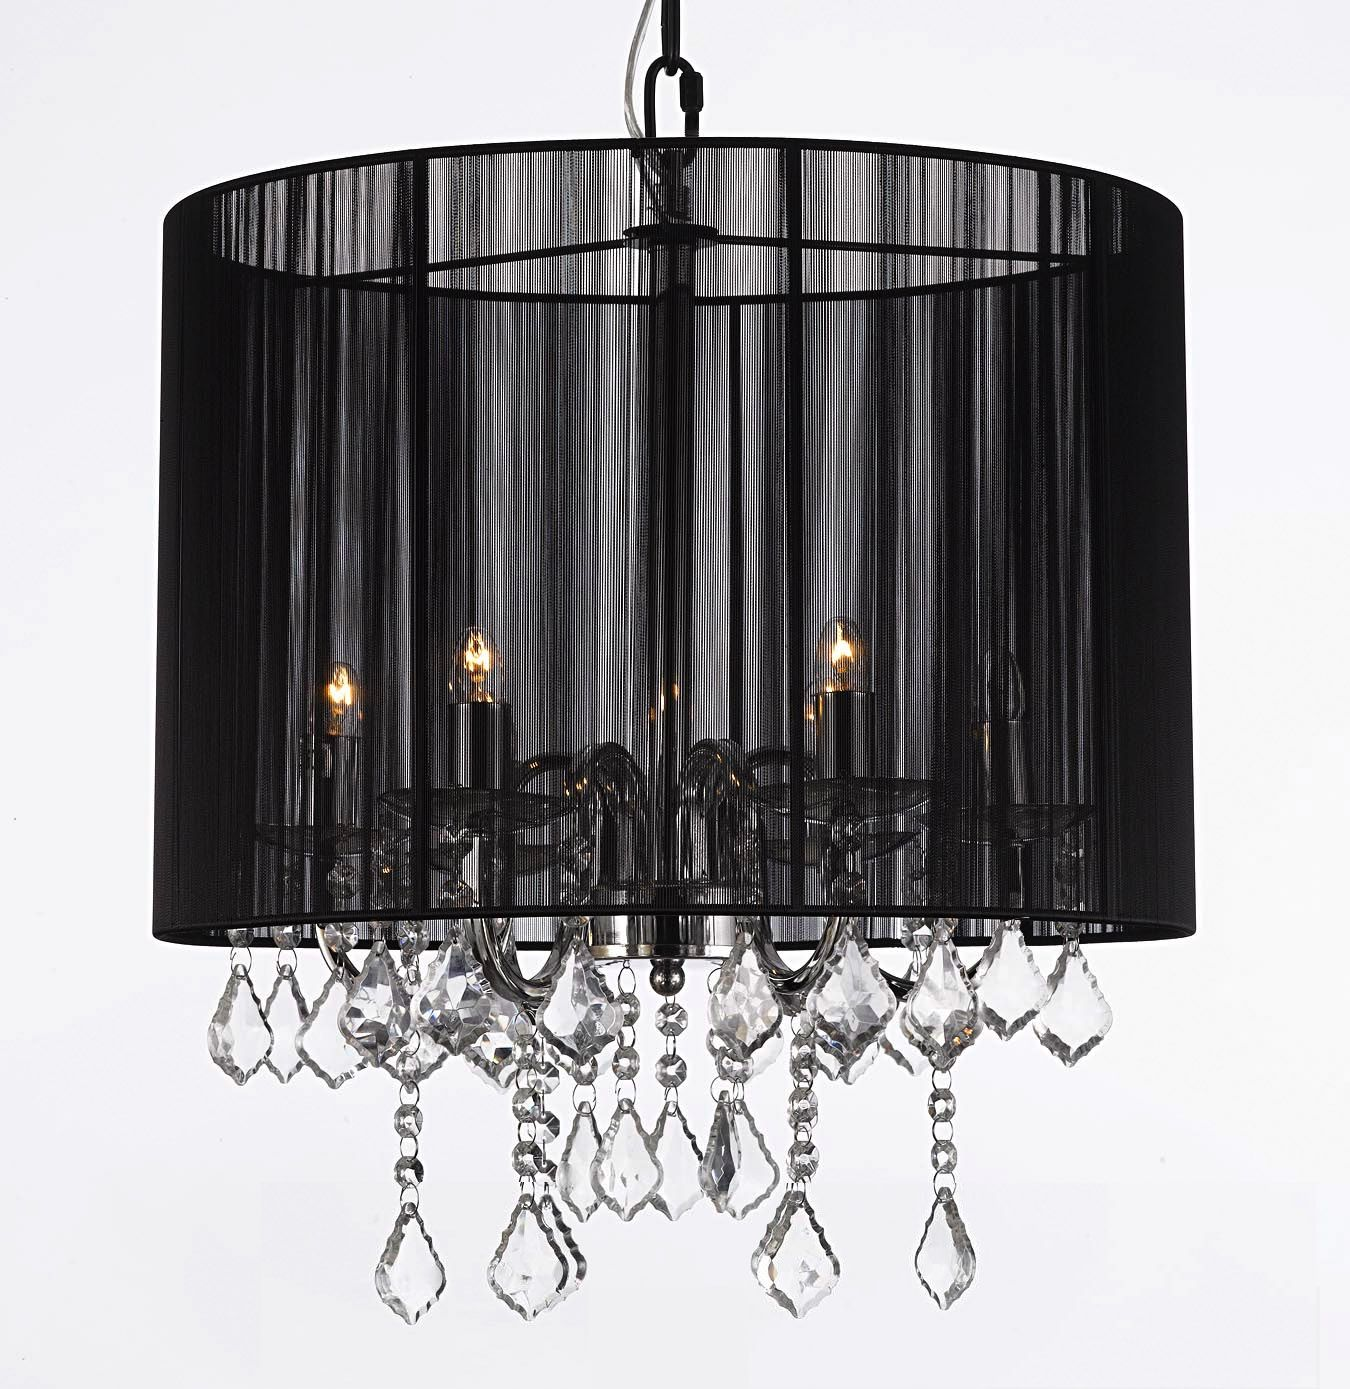 J10 5407 6 Gallery Chandeliers With Shades Crystal Chandelier With Shade House Of Decor Pendant Ceiling Lamp Crystal Chandelier Lighting